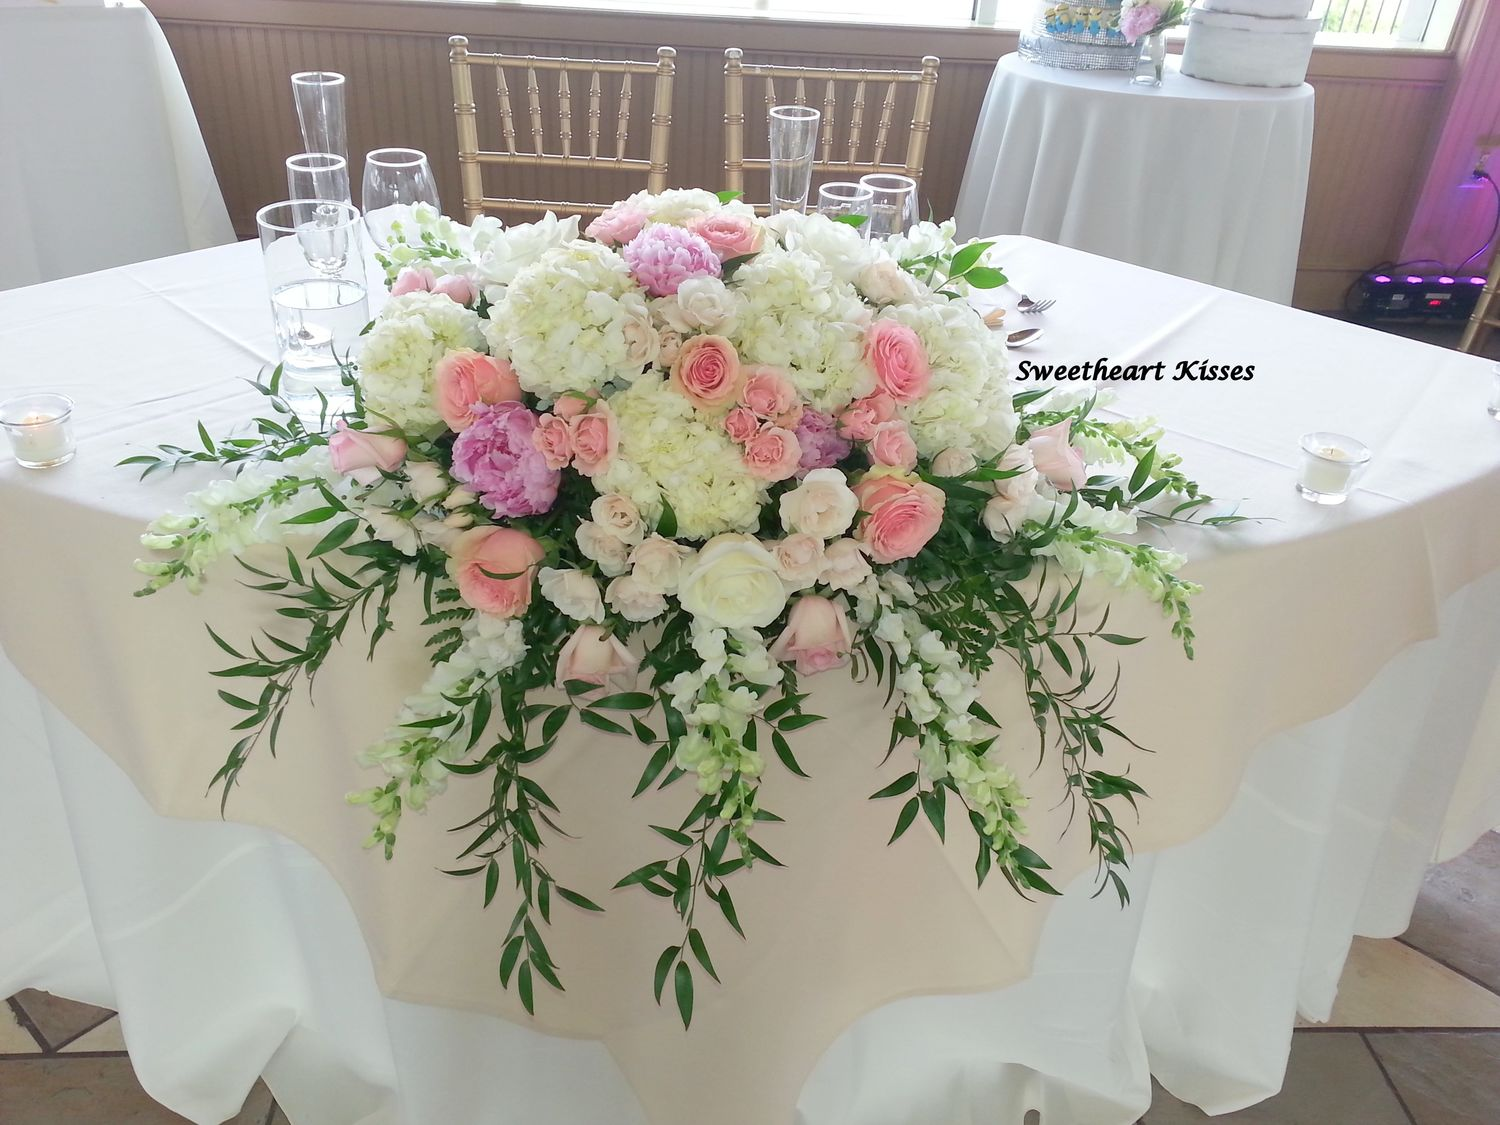 Everyone knows planning a special event can be frustrating, especially when it comes to time-consuming and burdensome tasks like choosing vendors and dealing with stressful table, chair and linen rentals, contracts and tight timelines.